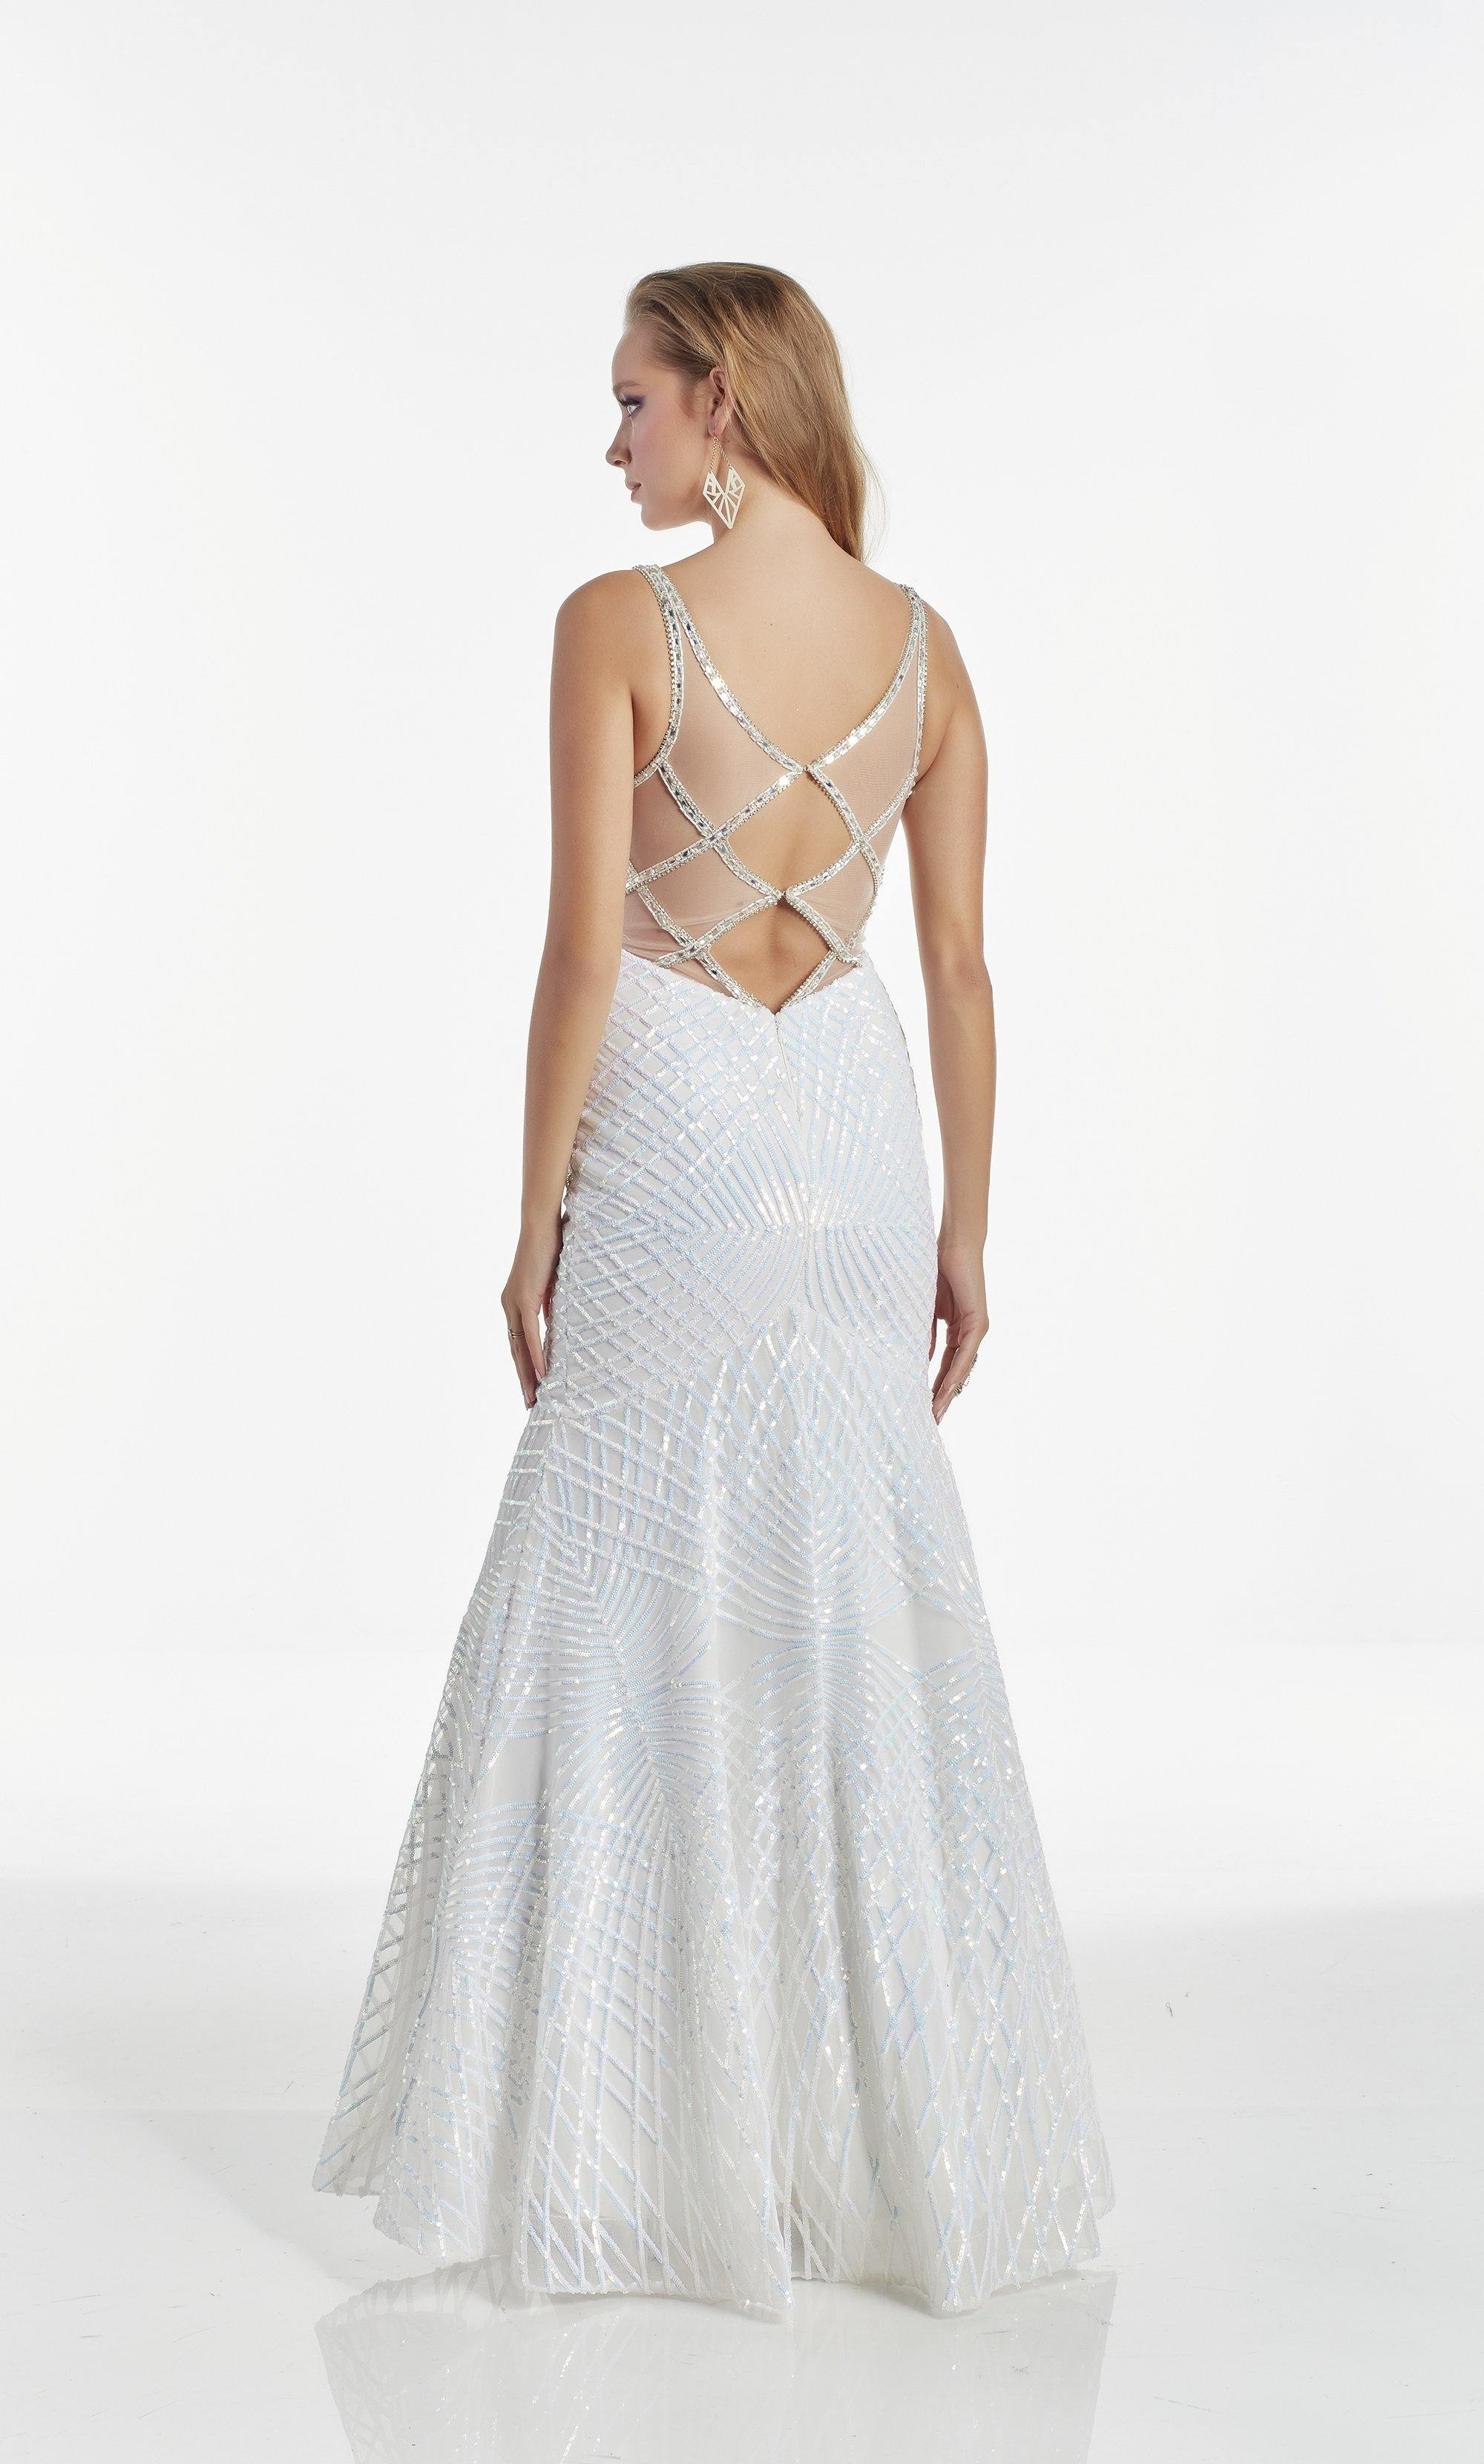 White Opal mermaid pageant dress featuring a V neck and fully embellished with iridescent sequins, beads, and stones